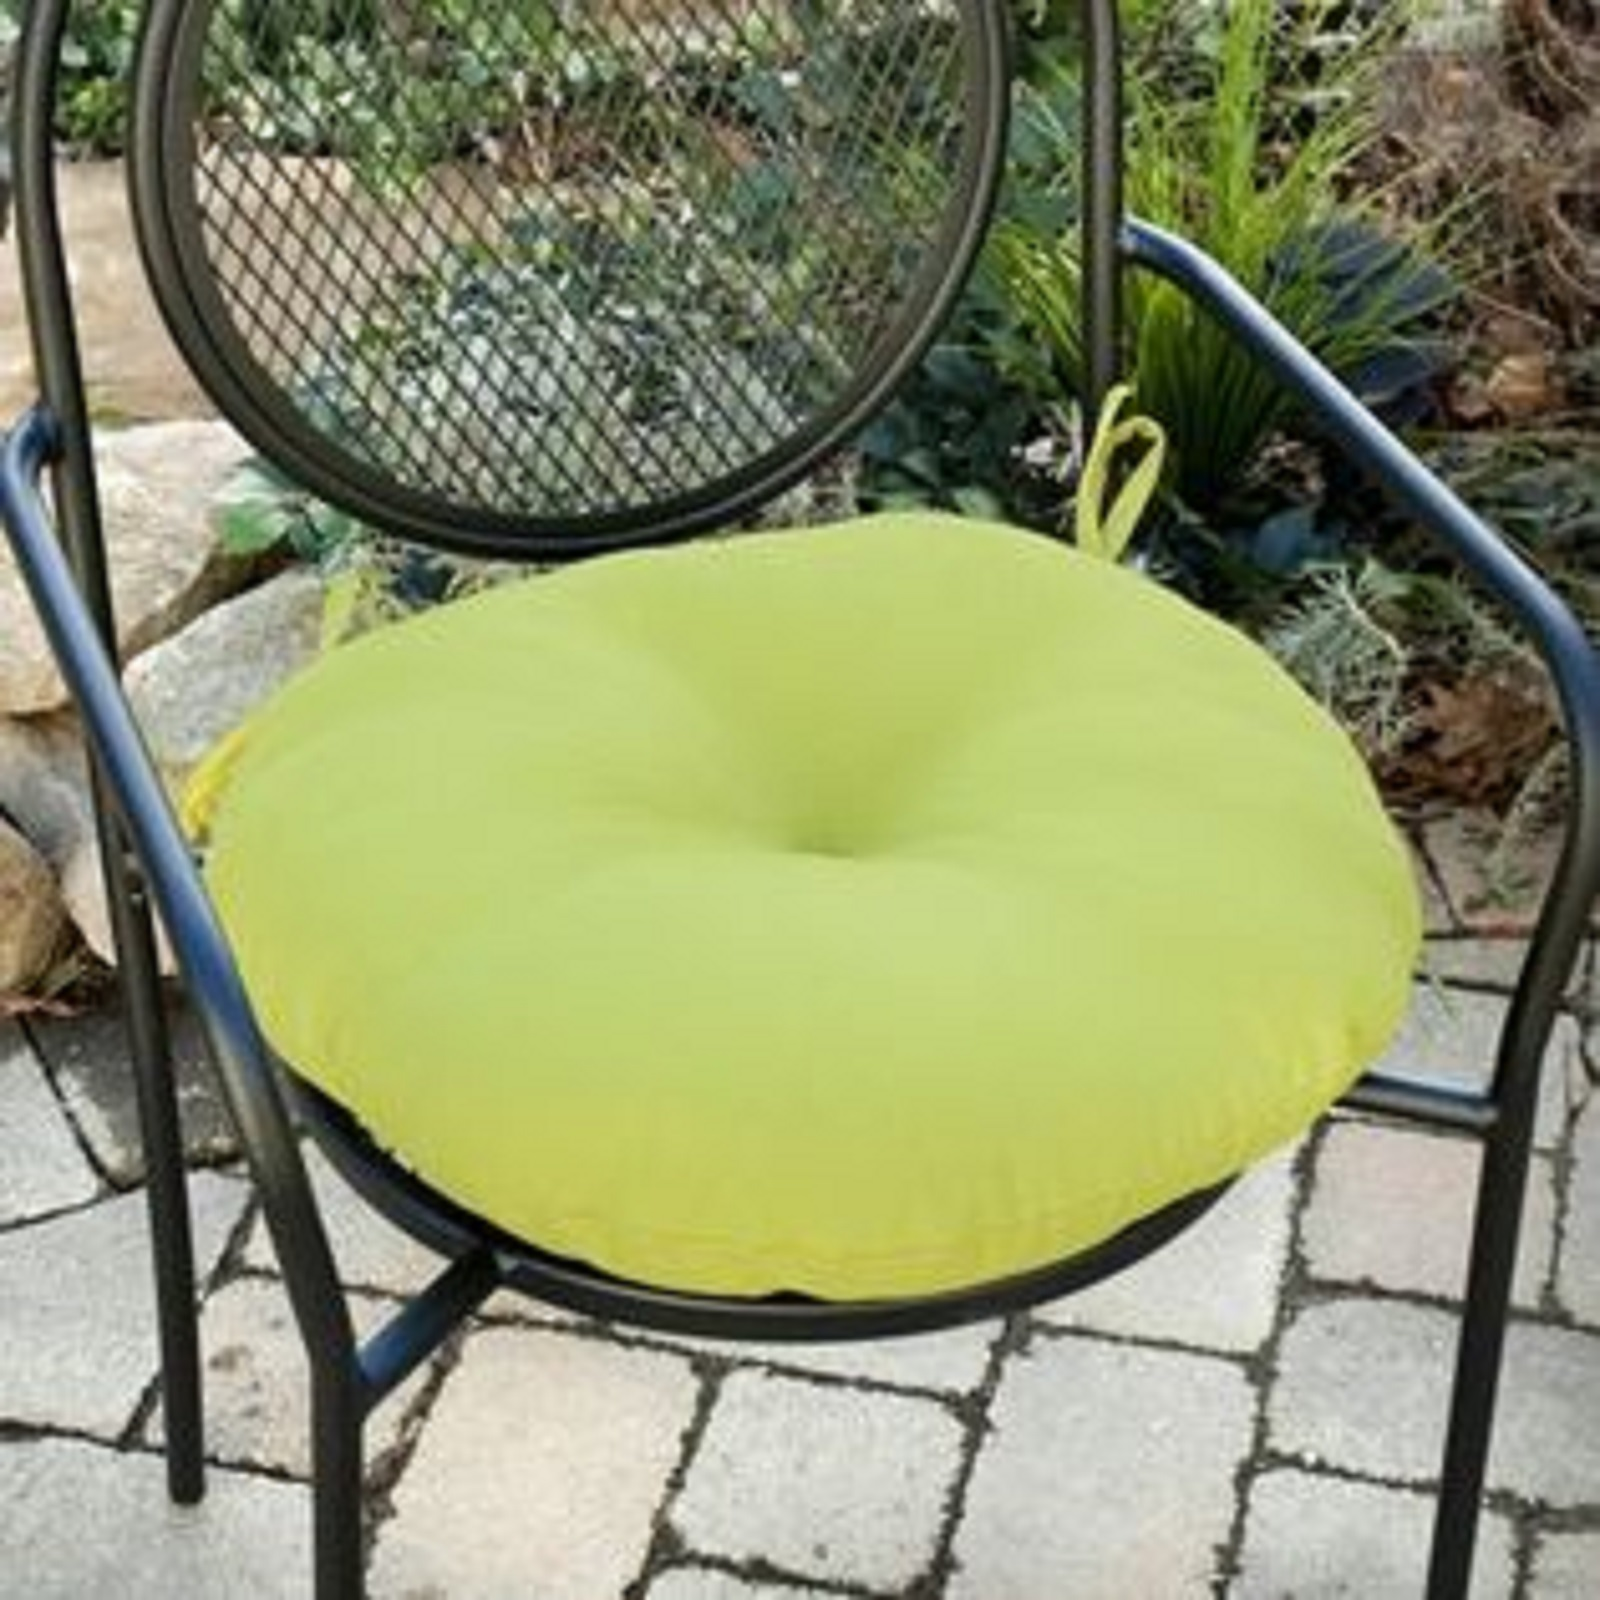 round cushions for outdoor chairs posture improving chair greendale home fashions 18 in bistro